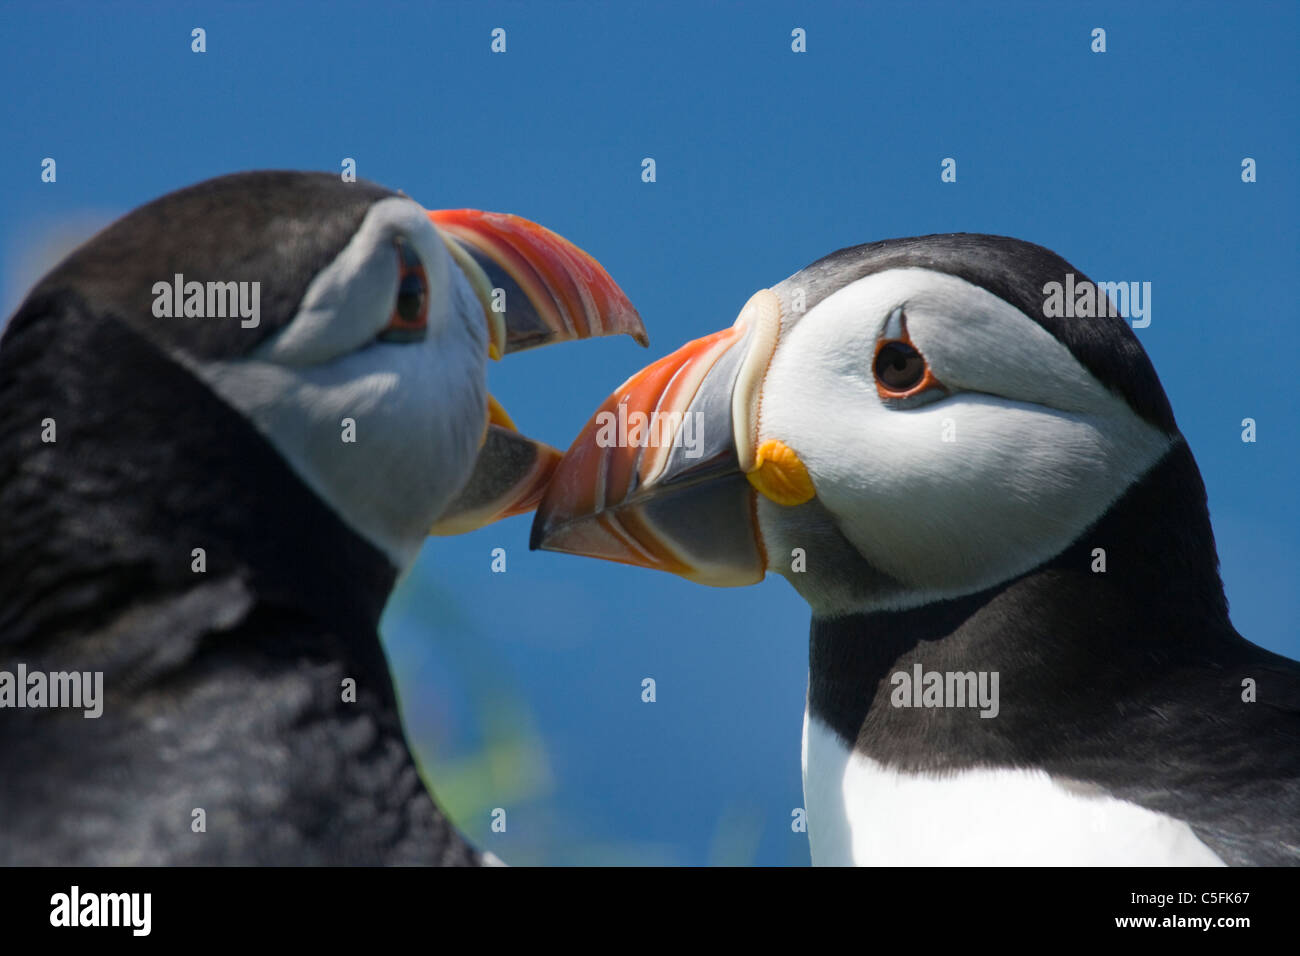 Puffins bill tapping courtship, Fratercula arctica, UK. - Stock Image